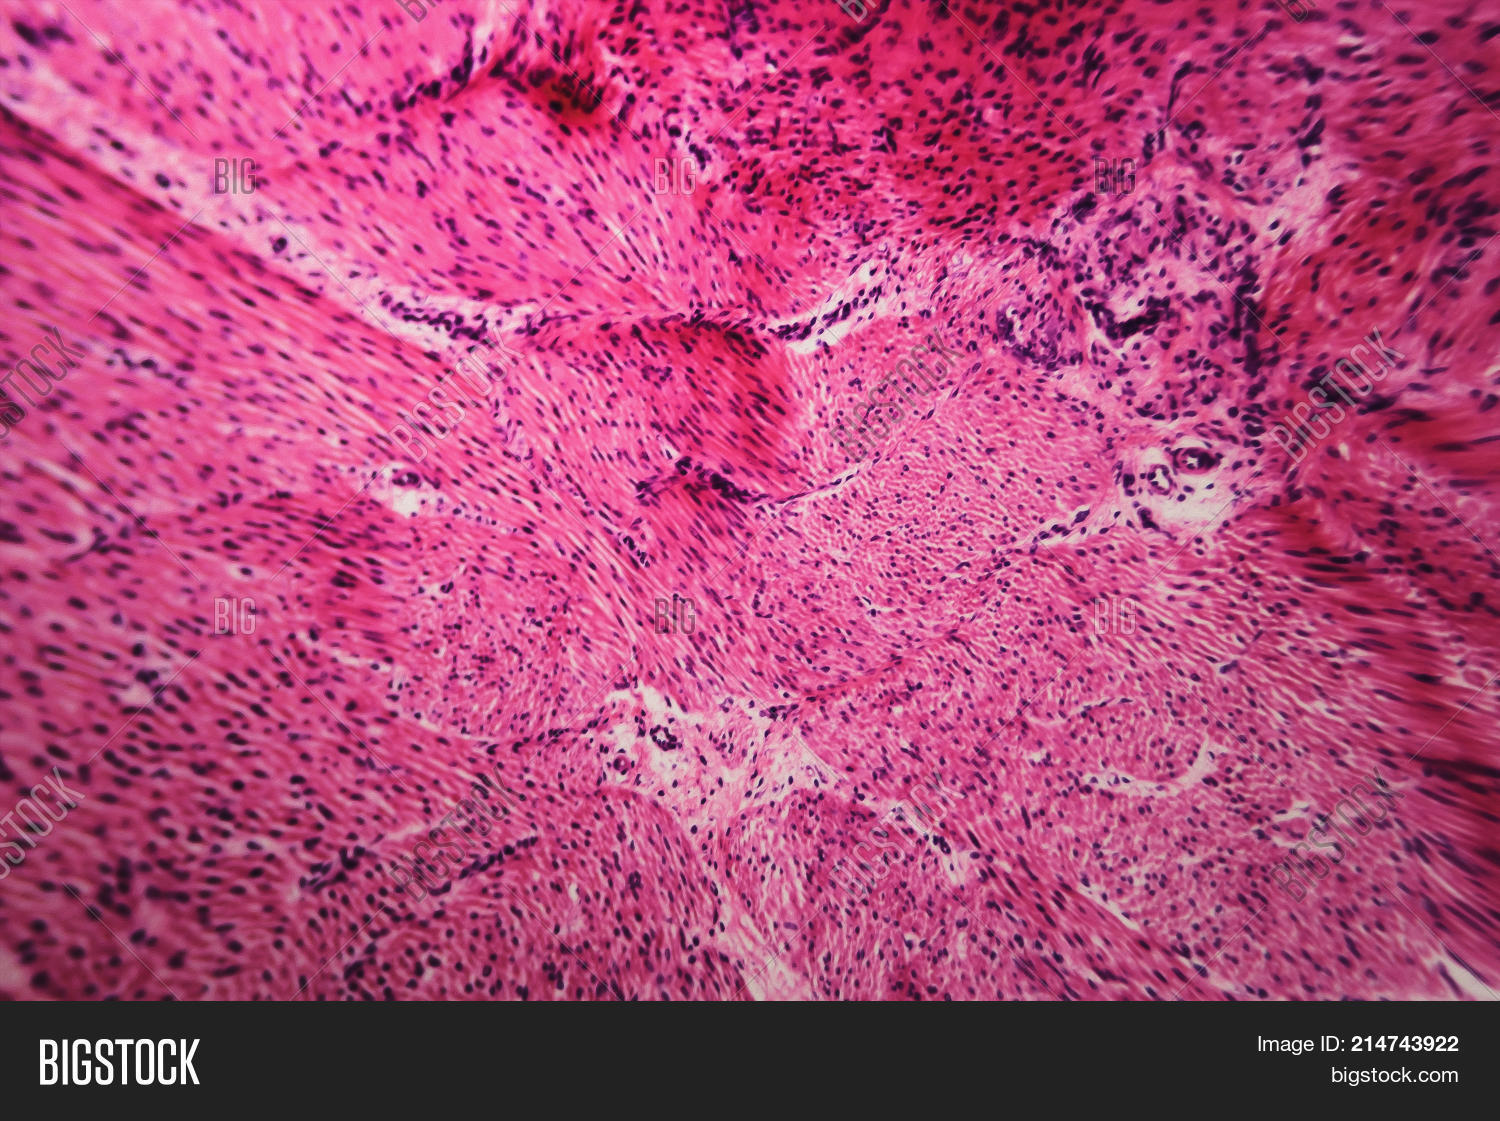 Cell Microscopic Image Photo Free Trial Bigstock